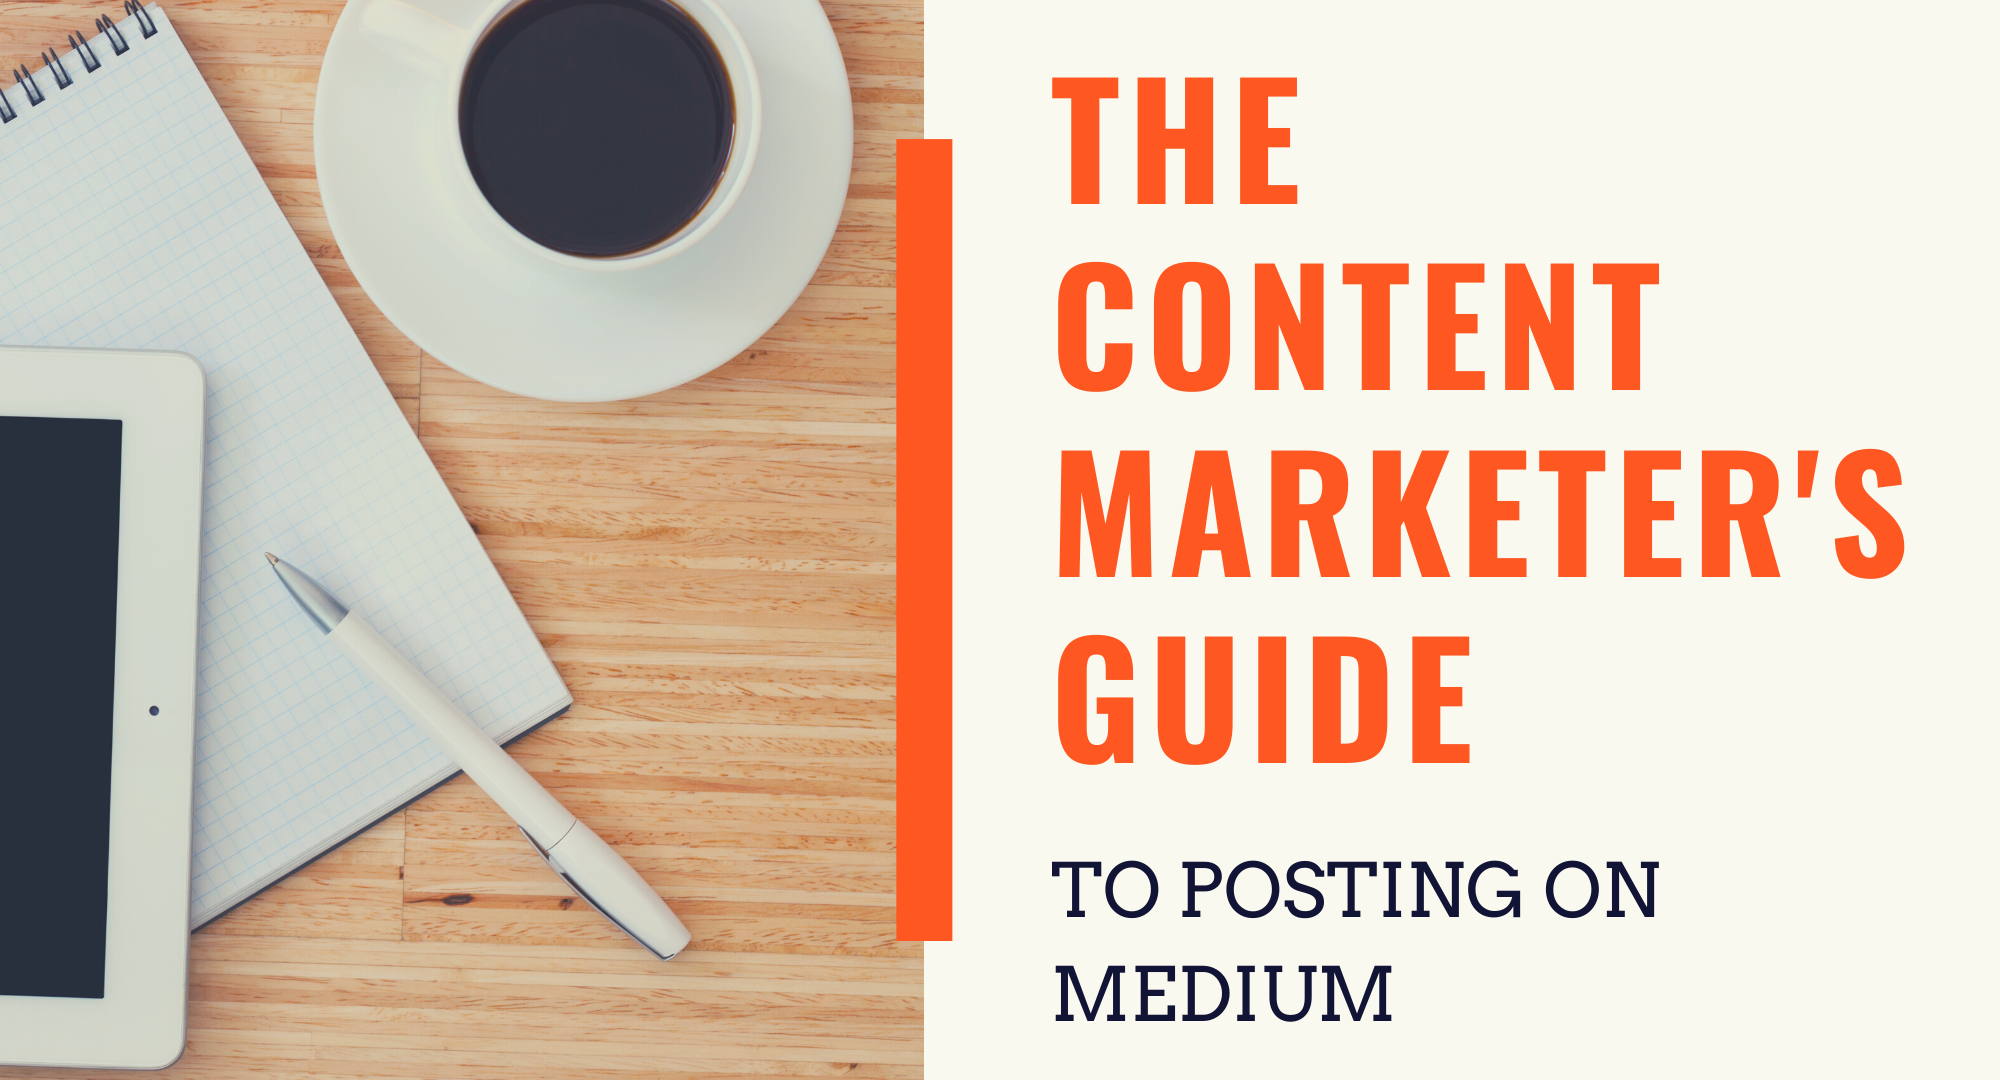 The Content Marketer's Guide to Posting on Medium